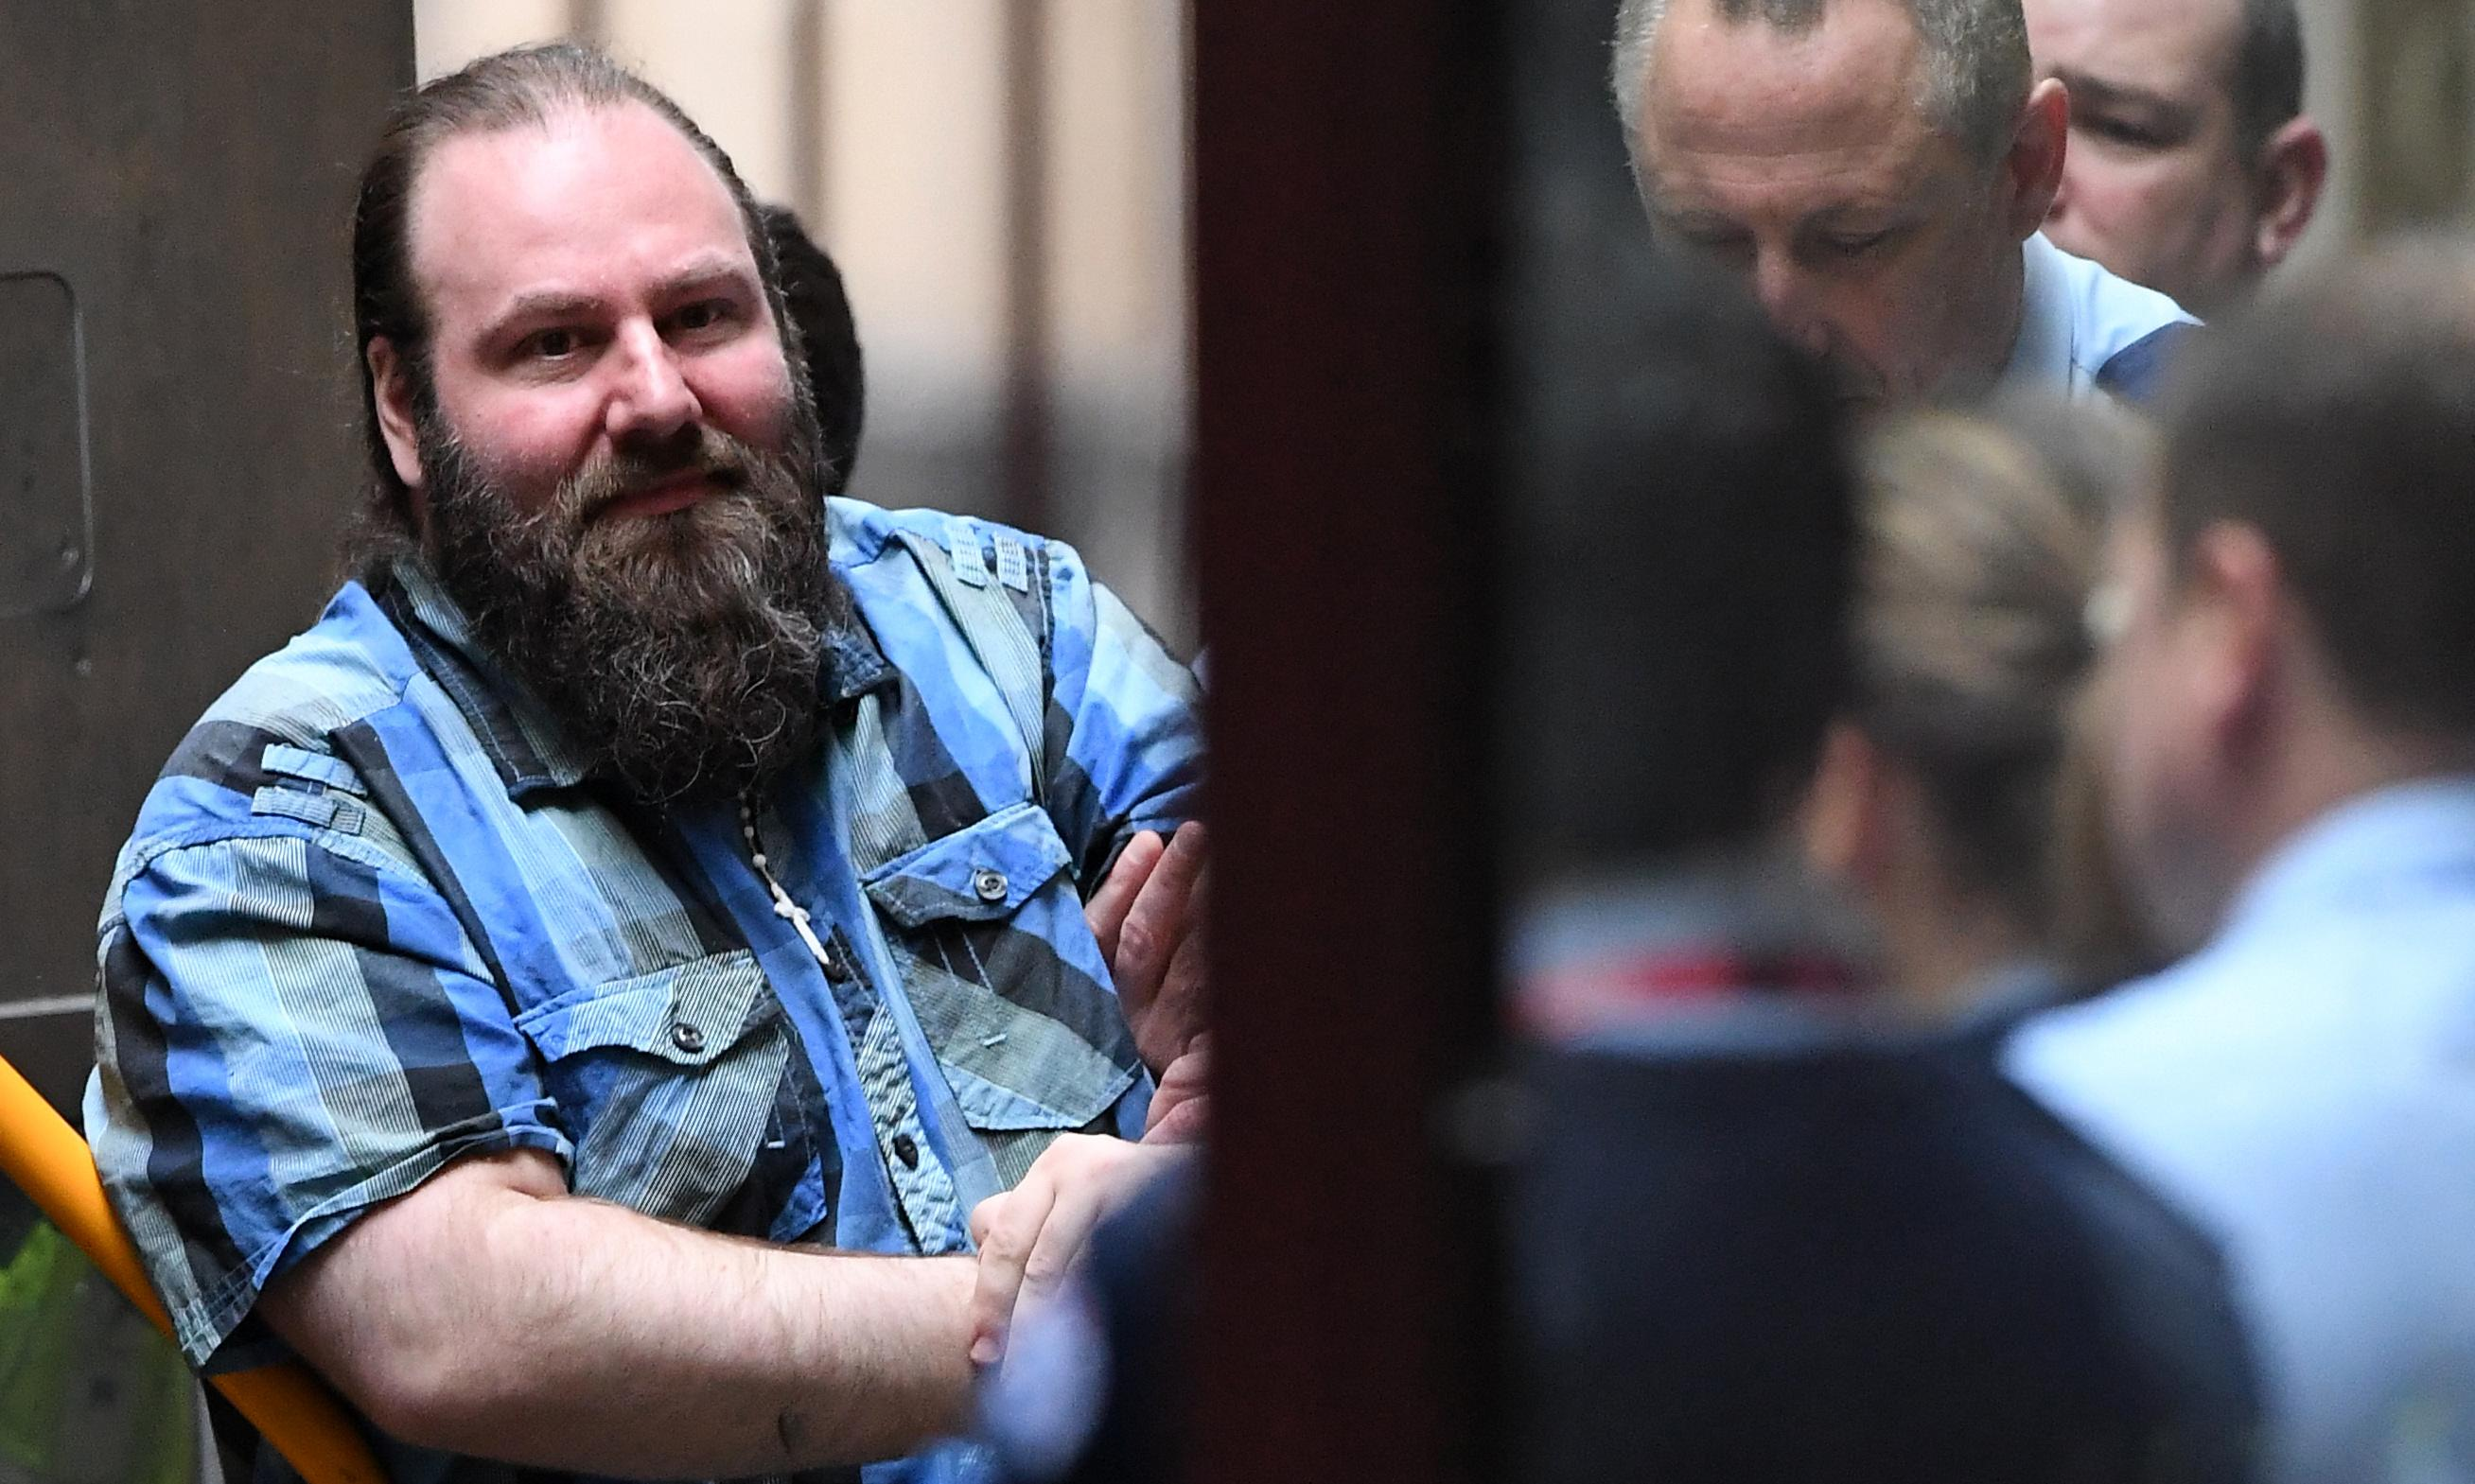 Accused rightwing terrorist researched recipe for mace and bombs, court hears